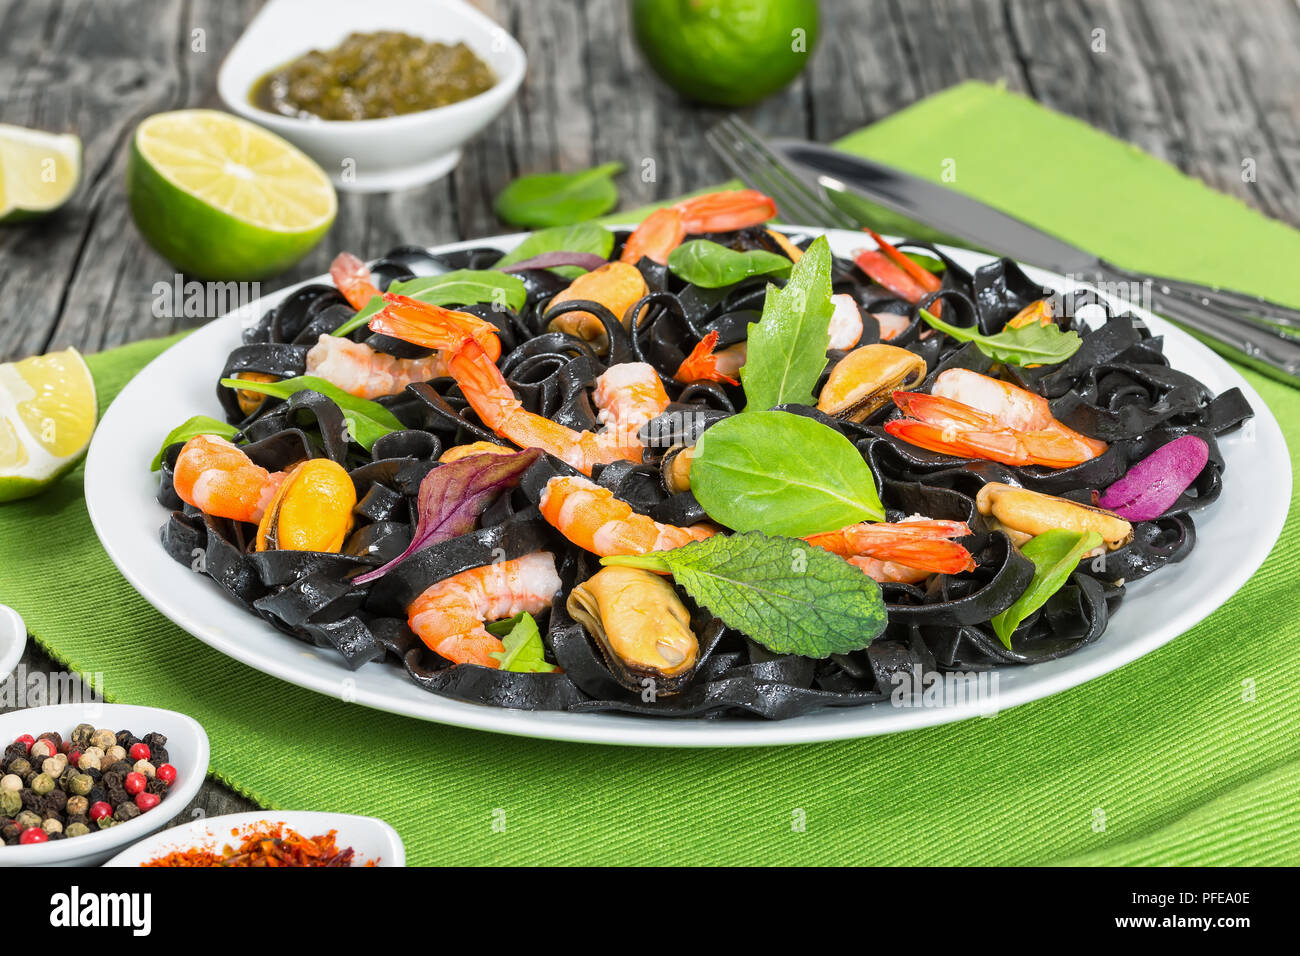 delicious black noodles salad with prawns, mussels, fresh green spinach, lettuce, arugula on white dish on table mat on dark wooden table with lime sl - Stock Image